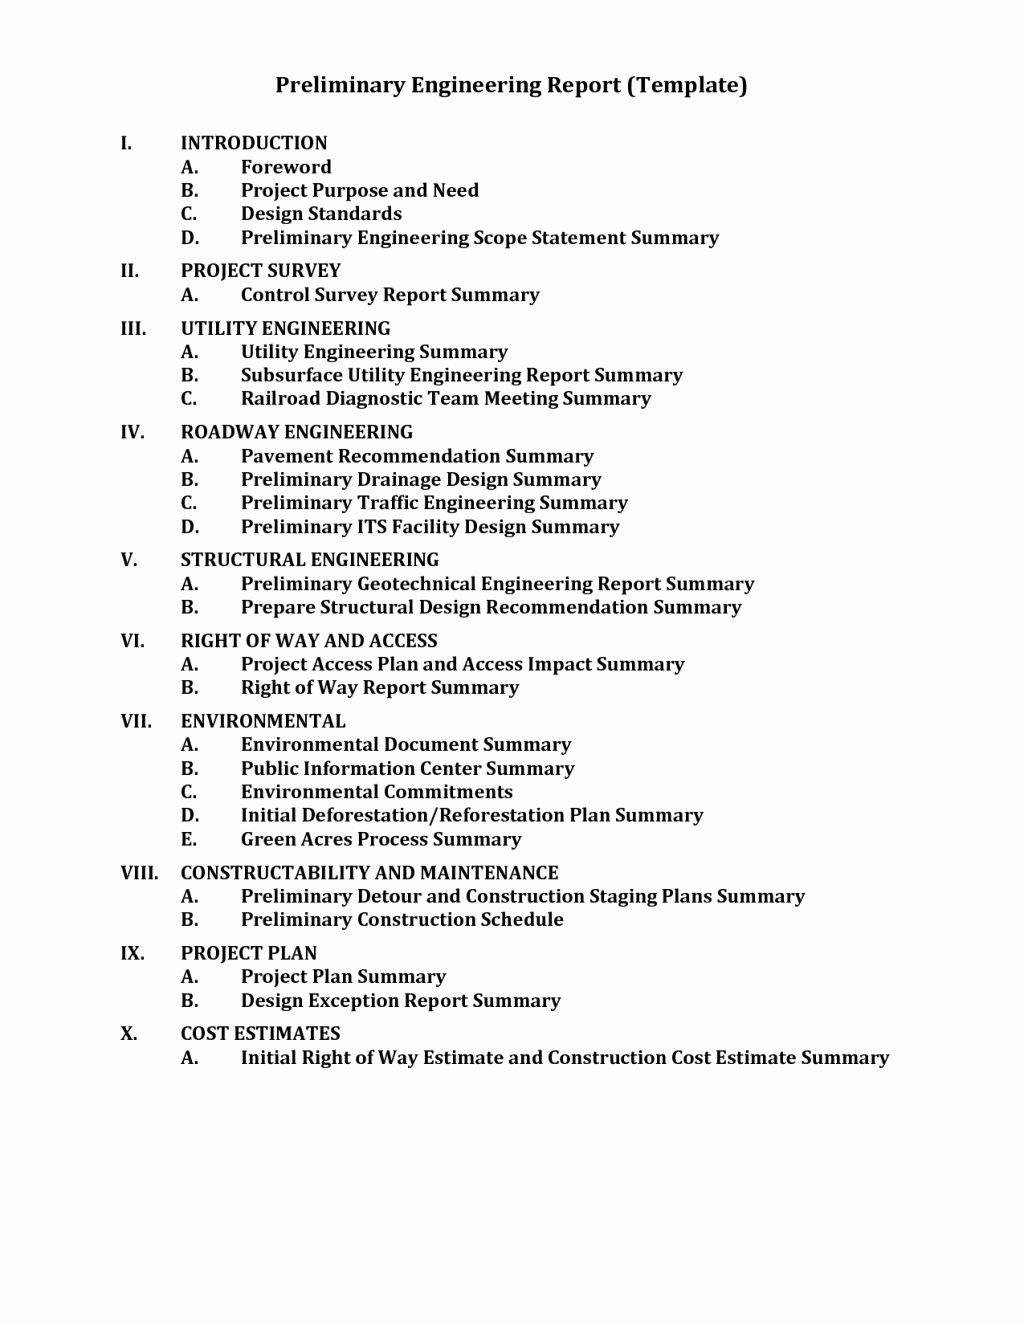 Engineering Report Table Contents Template Pdf